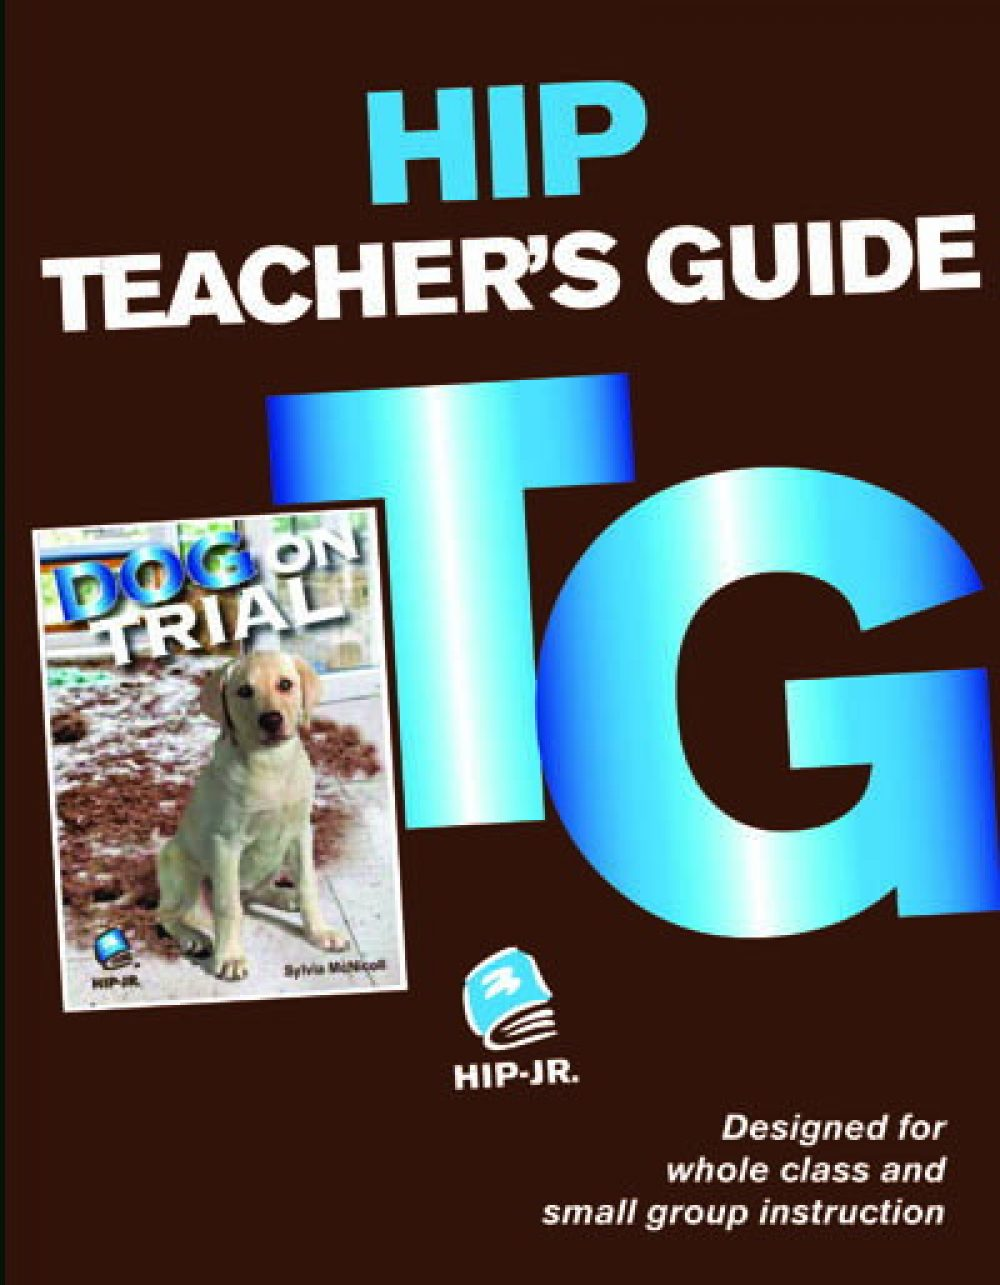 Dog on Trial Teacher's Guide